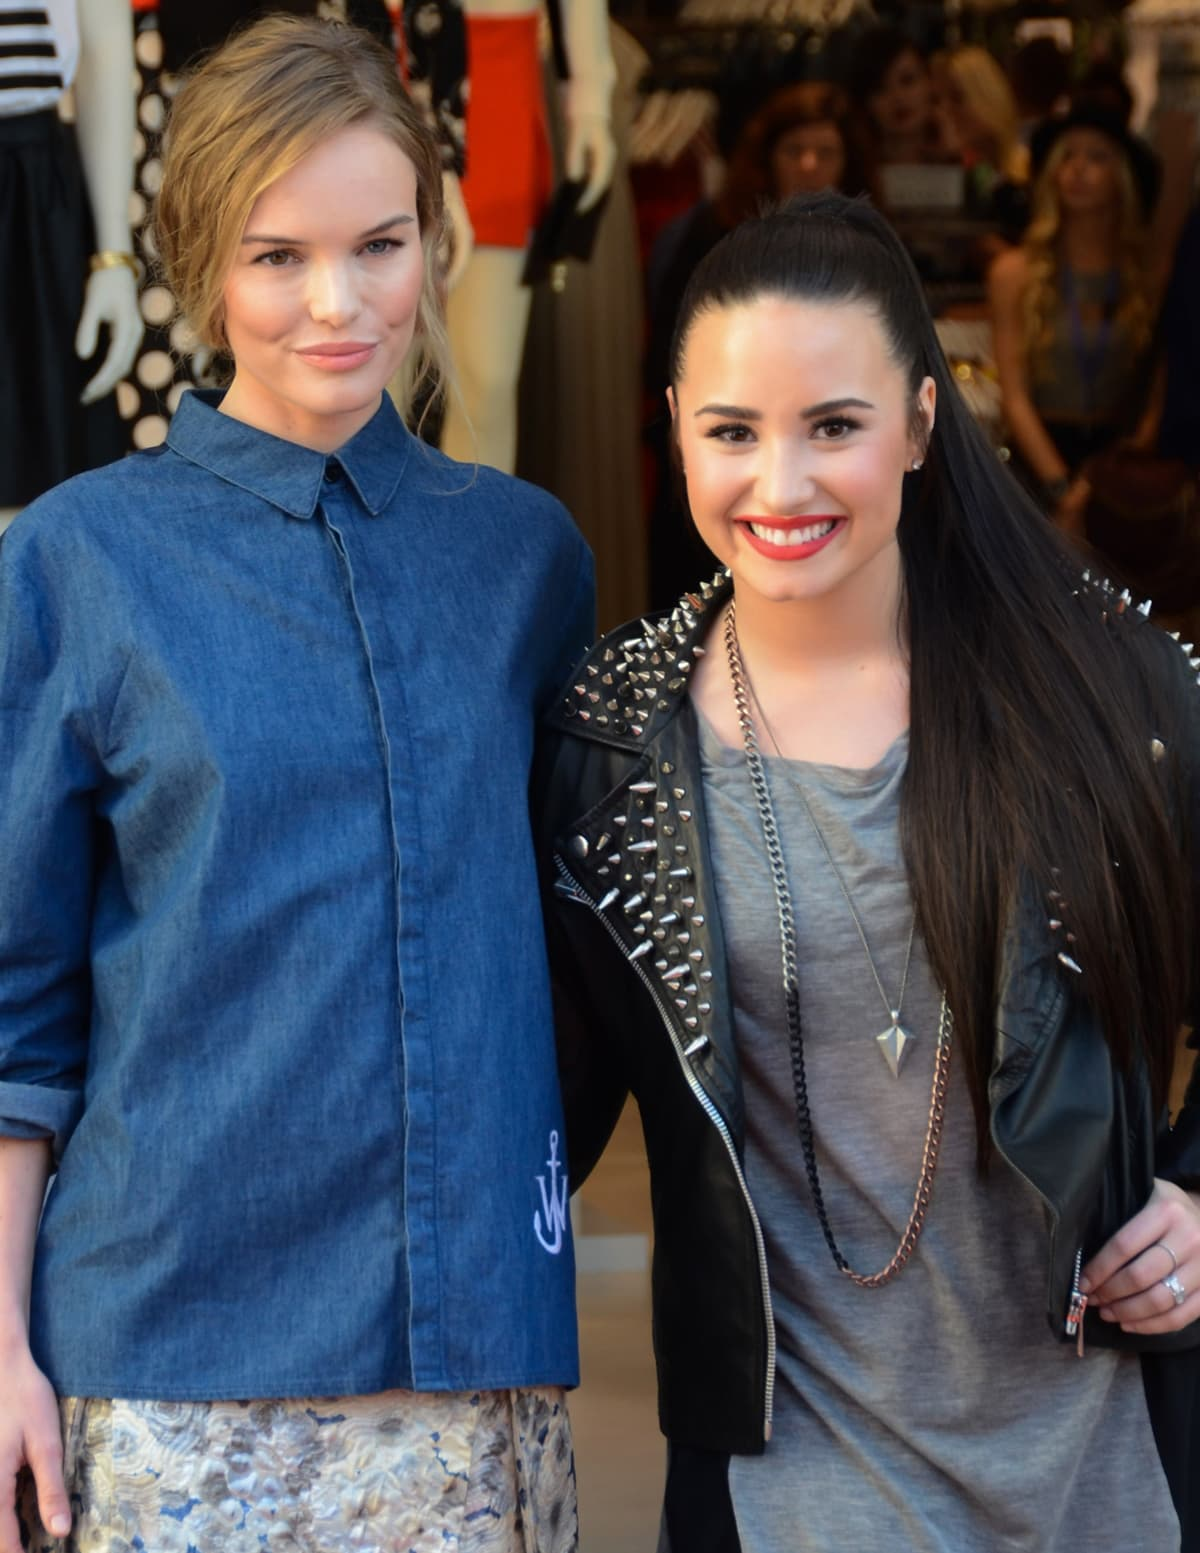 Kate Bosworth and Demi Lovato attend the grand opening of the Topshop Topman LA Store